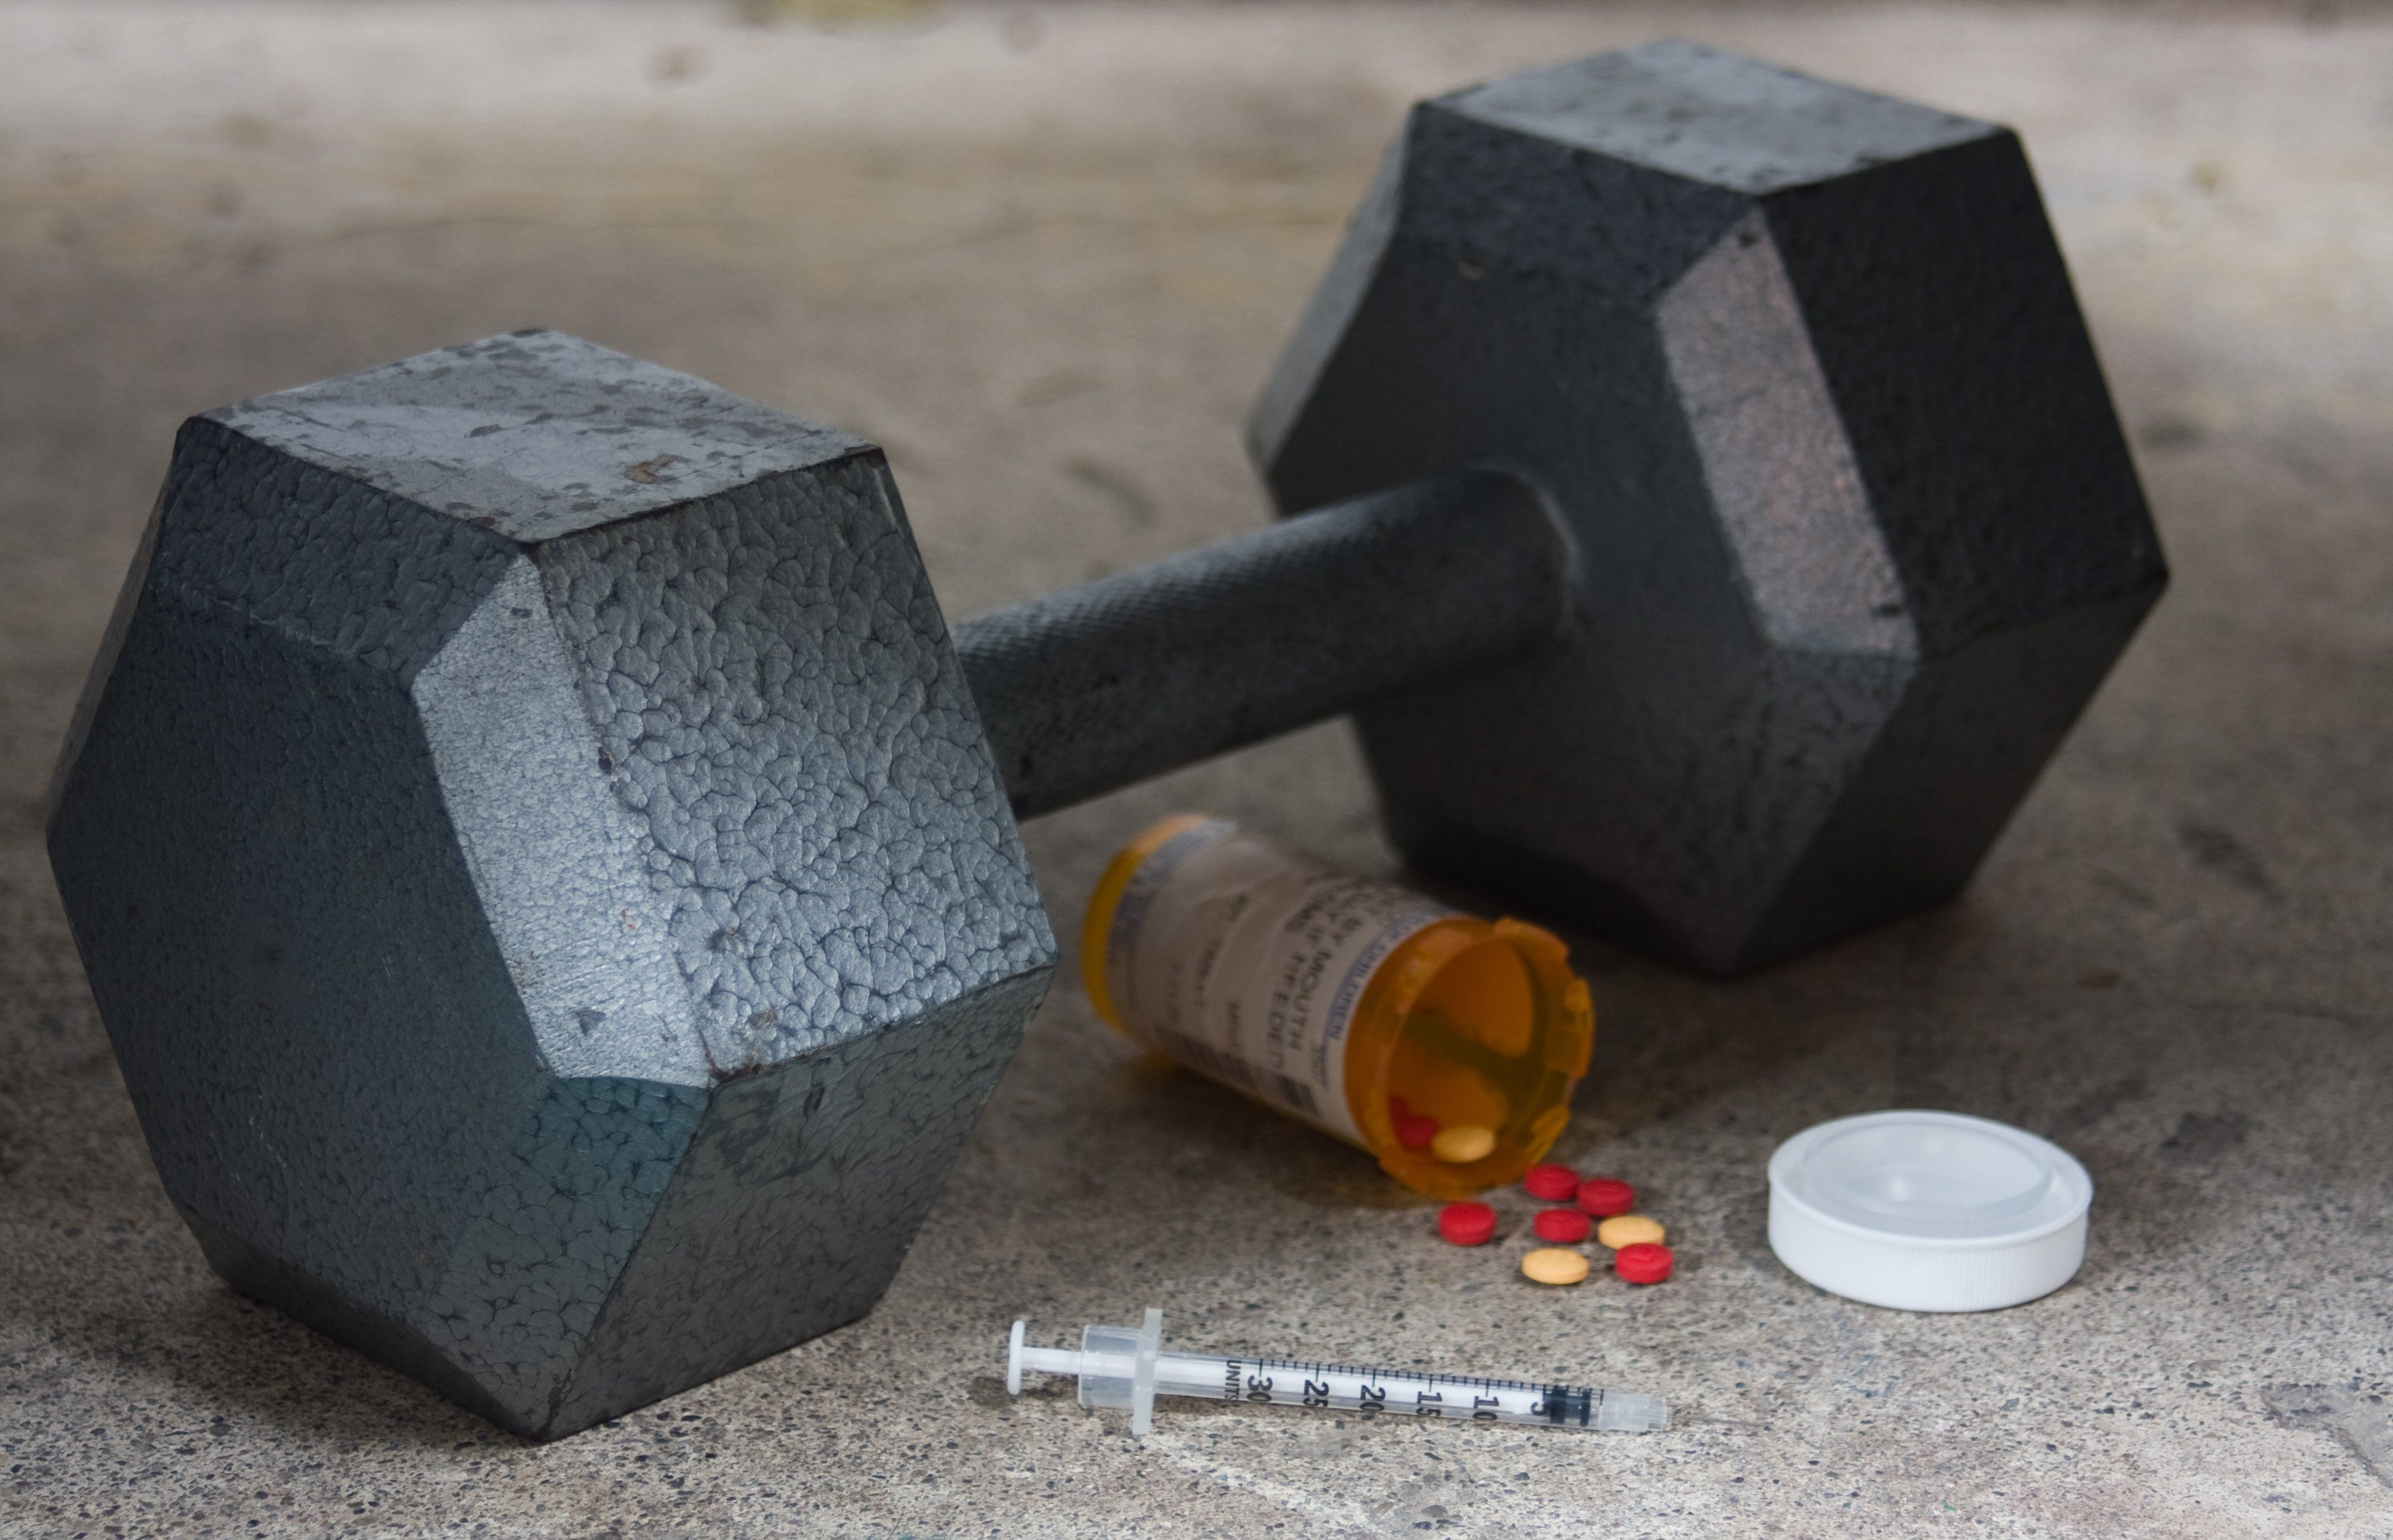 Talk with teens about performance-enhancing substances